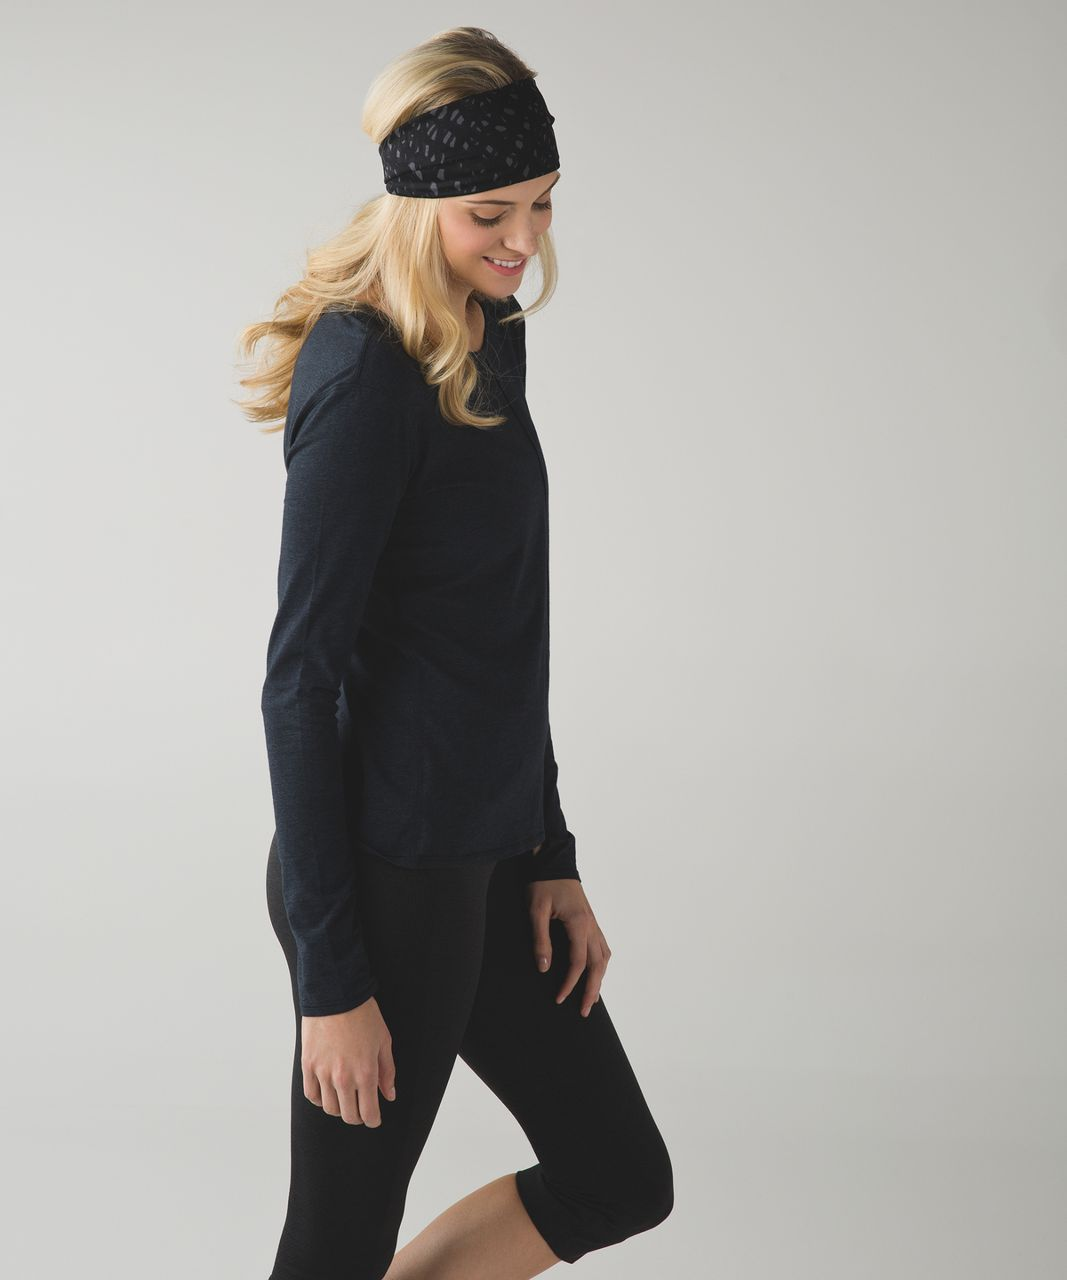 Lululemon Fringe Fighter Headband - Lace Play Dark Slate Black / Heathered Black